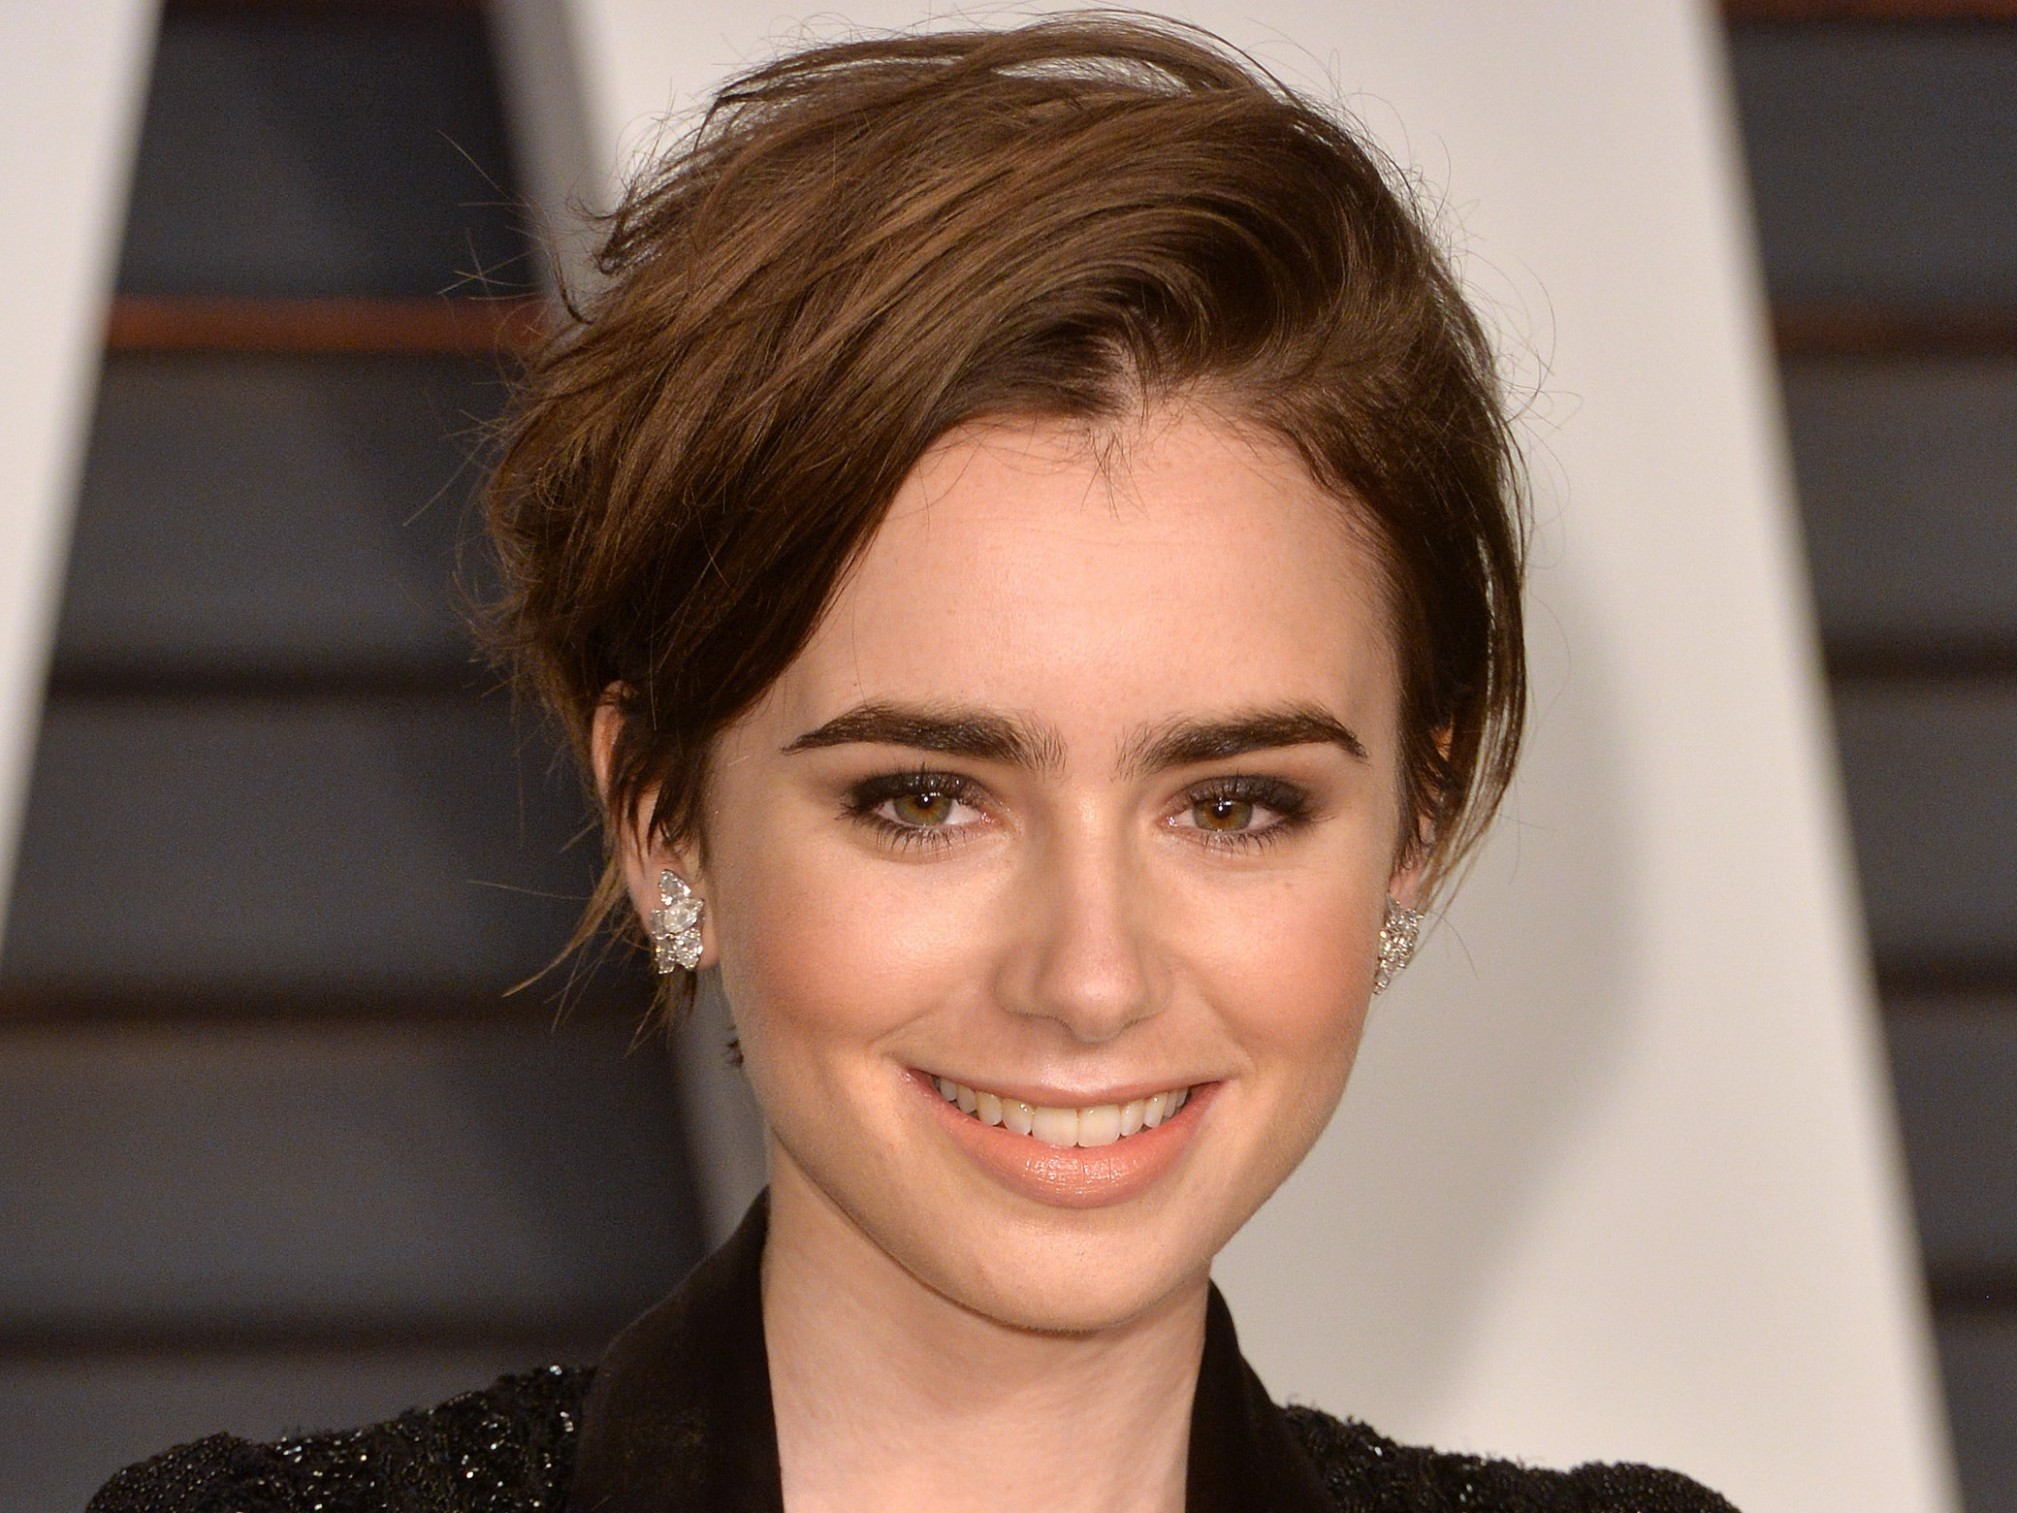 Growing Out A Pixie Cut: 11 Tips For Styling Short Hair Teen Vogue Growing Out A Pixie Cut